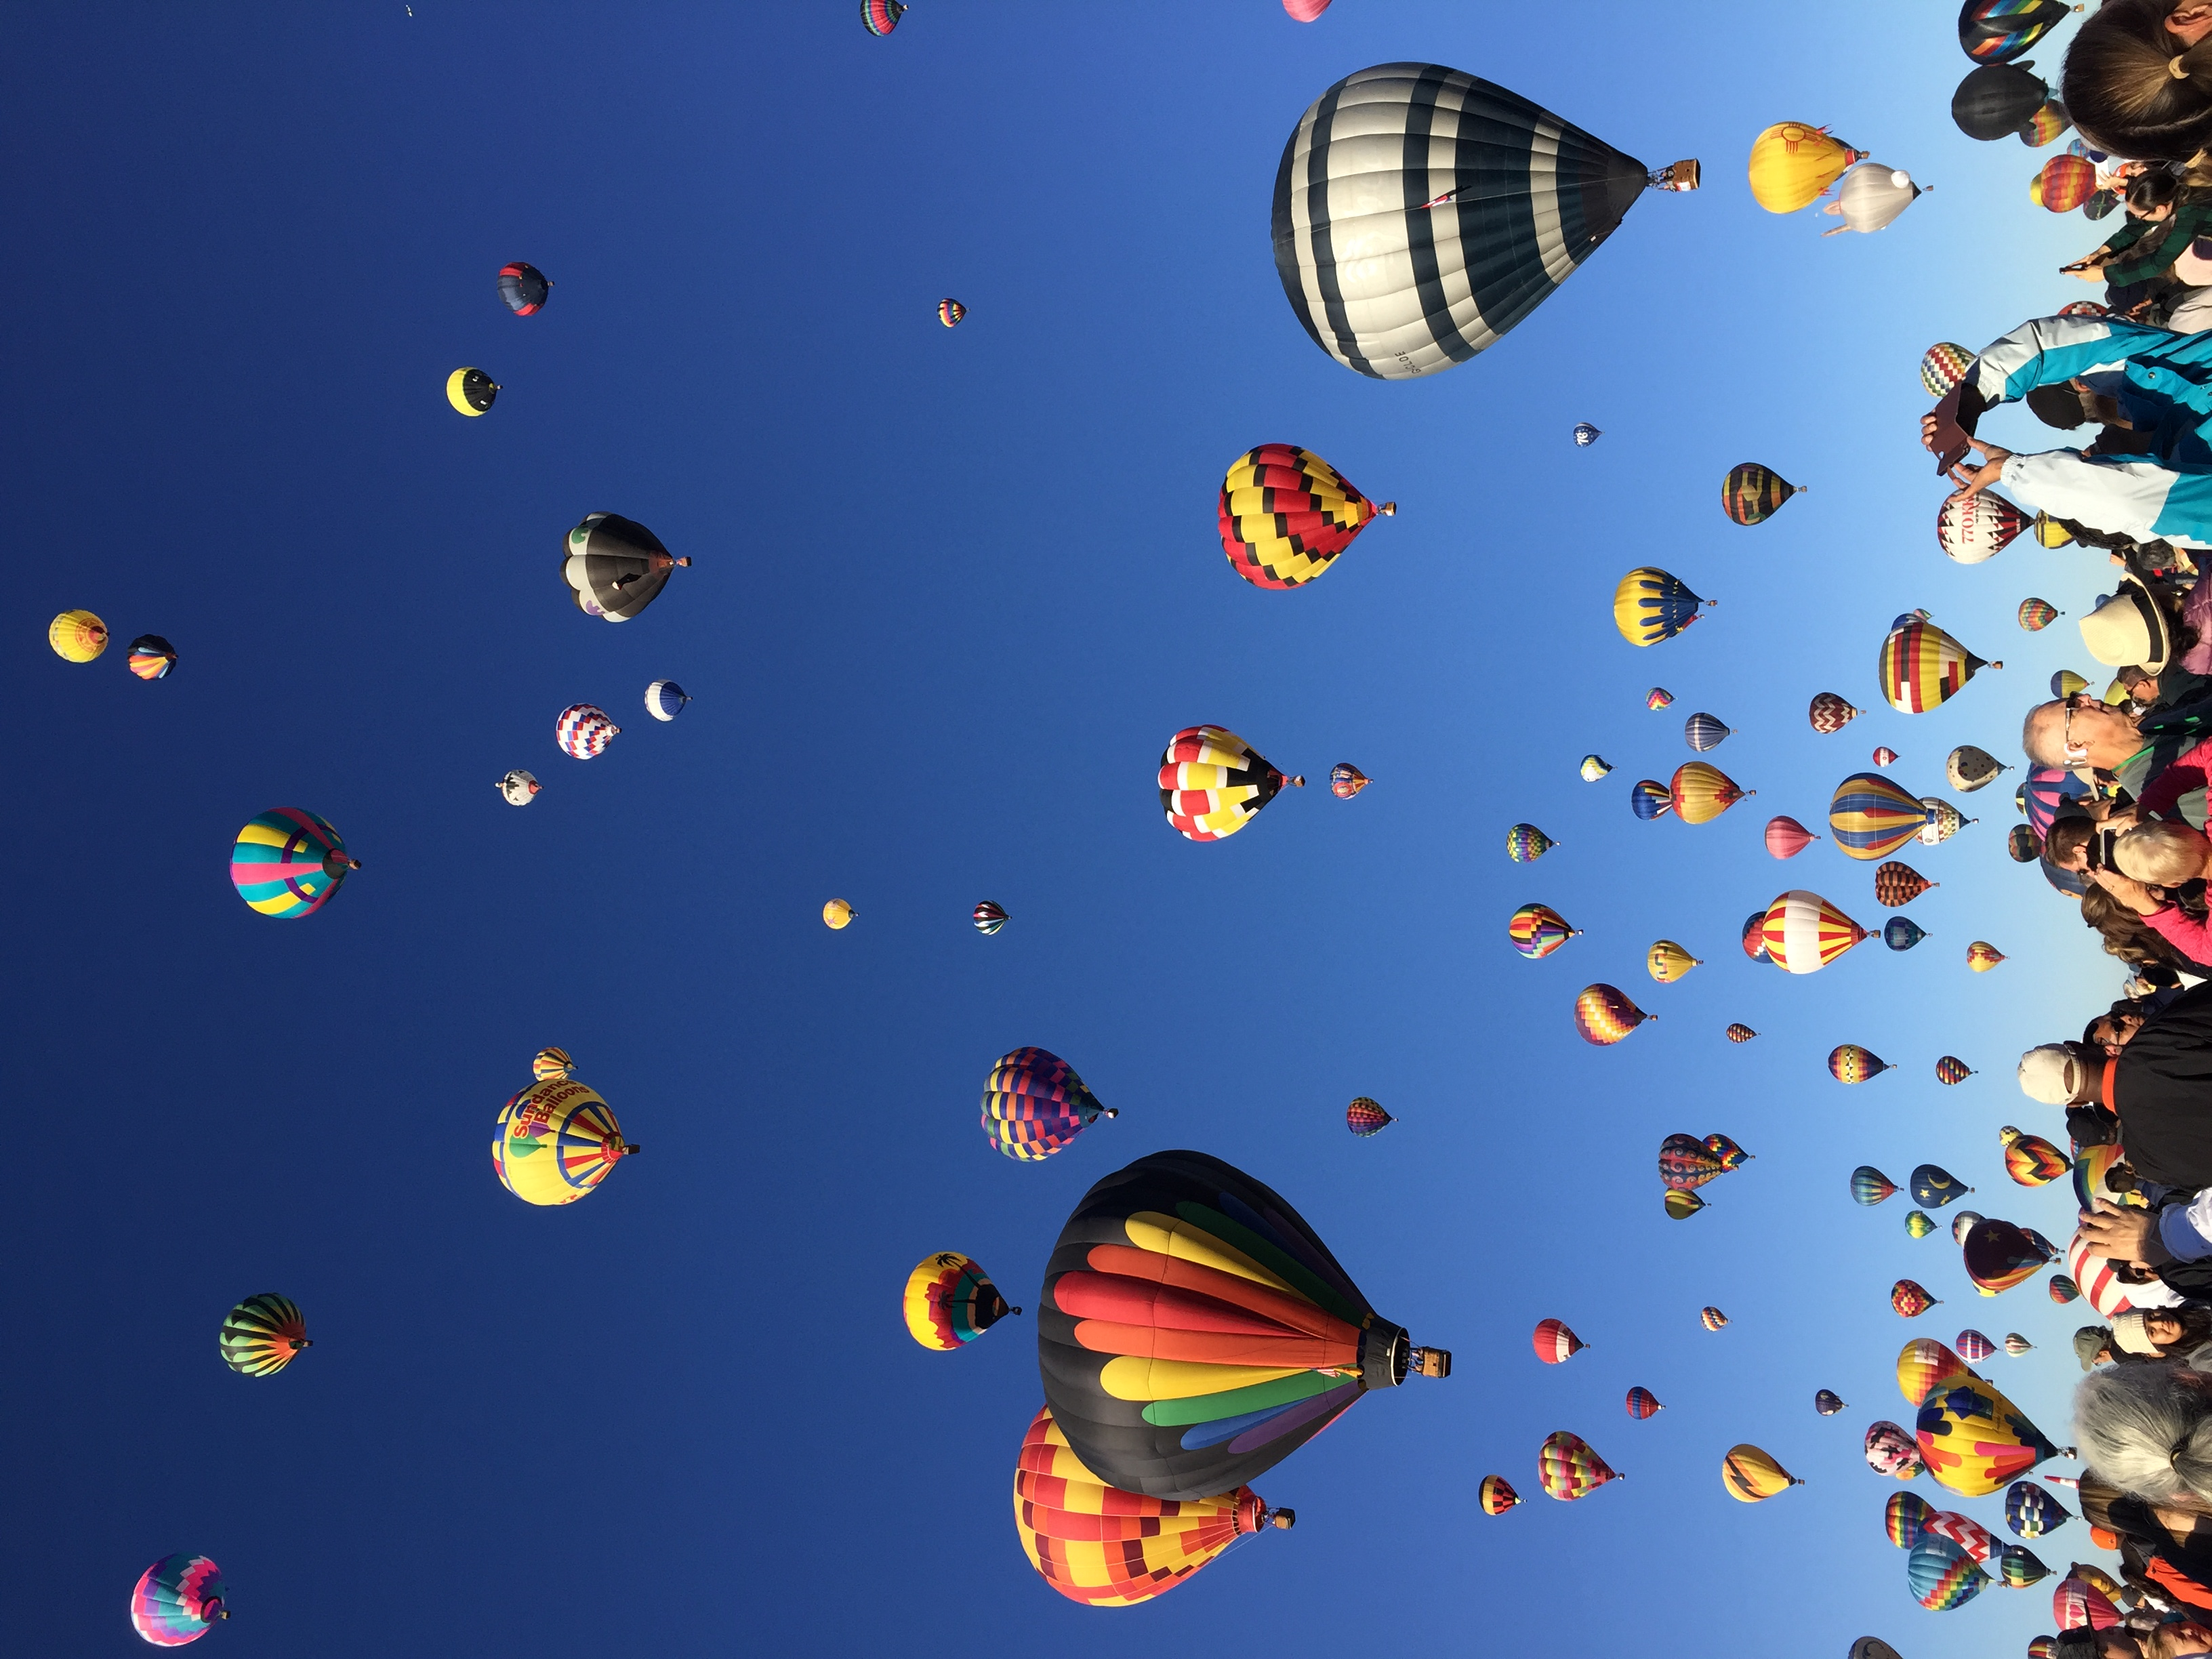 Day 8 of balloon fiesta